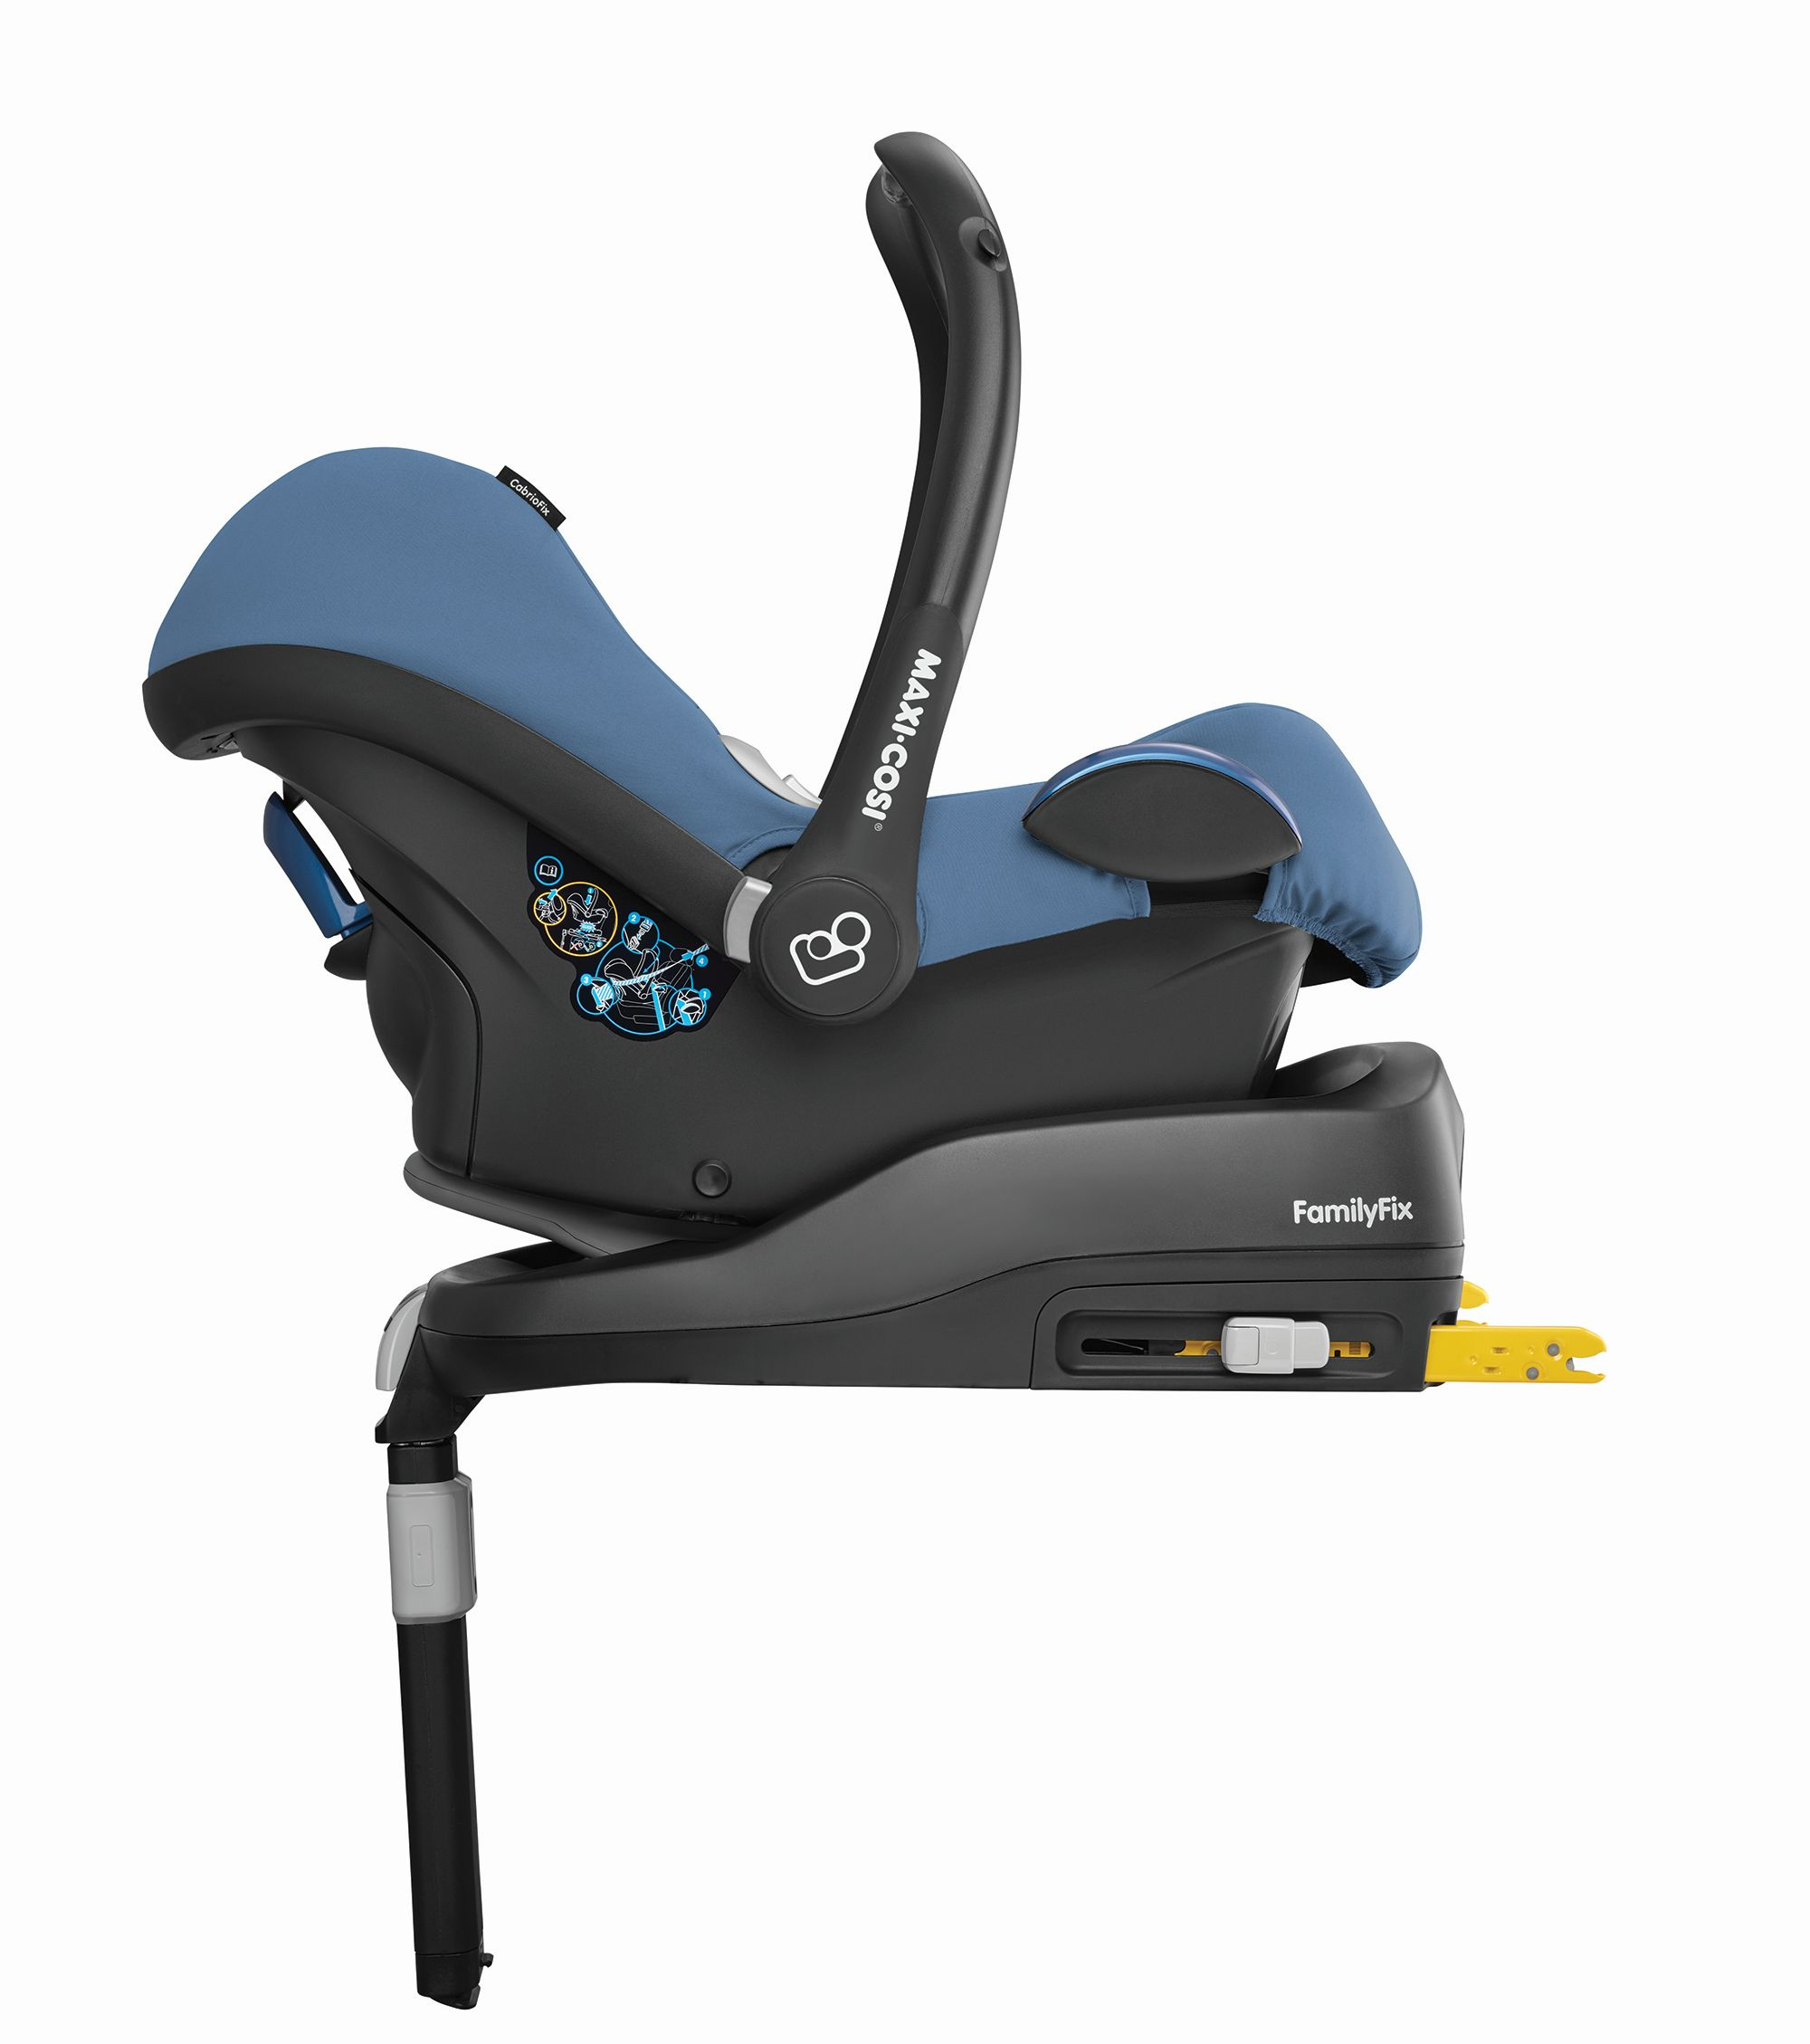 Multi Function baby stroller travel system moreover Best Double Stroller besides A ins Diet Foods Lose Up To 15 Pounds In 14 Days likewise Graco Snugride 40 Click Connect Video Review furthermore Britax B Safe Infant Car Seat Buy At Diapers  Free. on combination car seat stroller